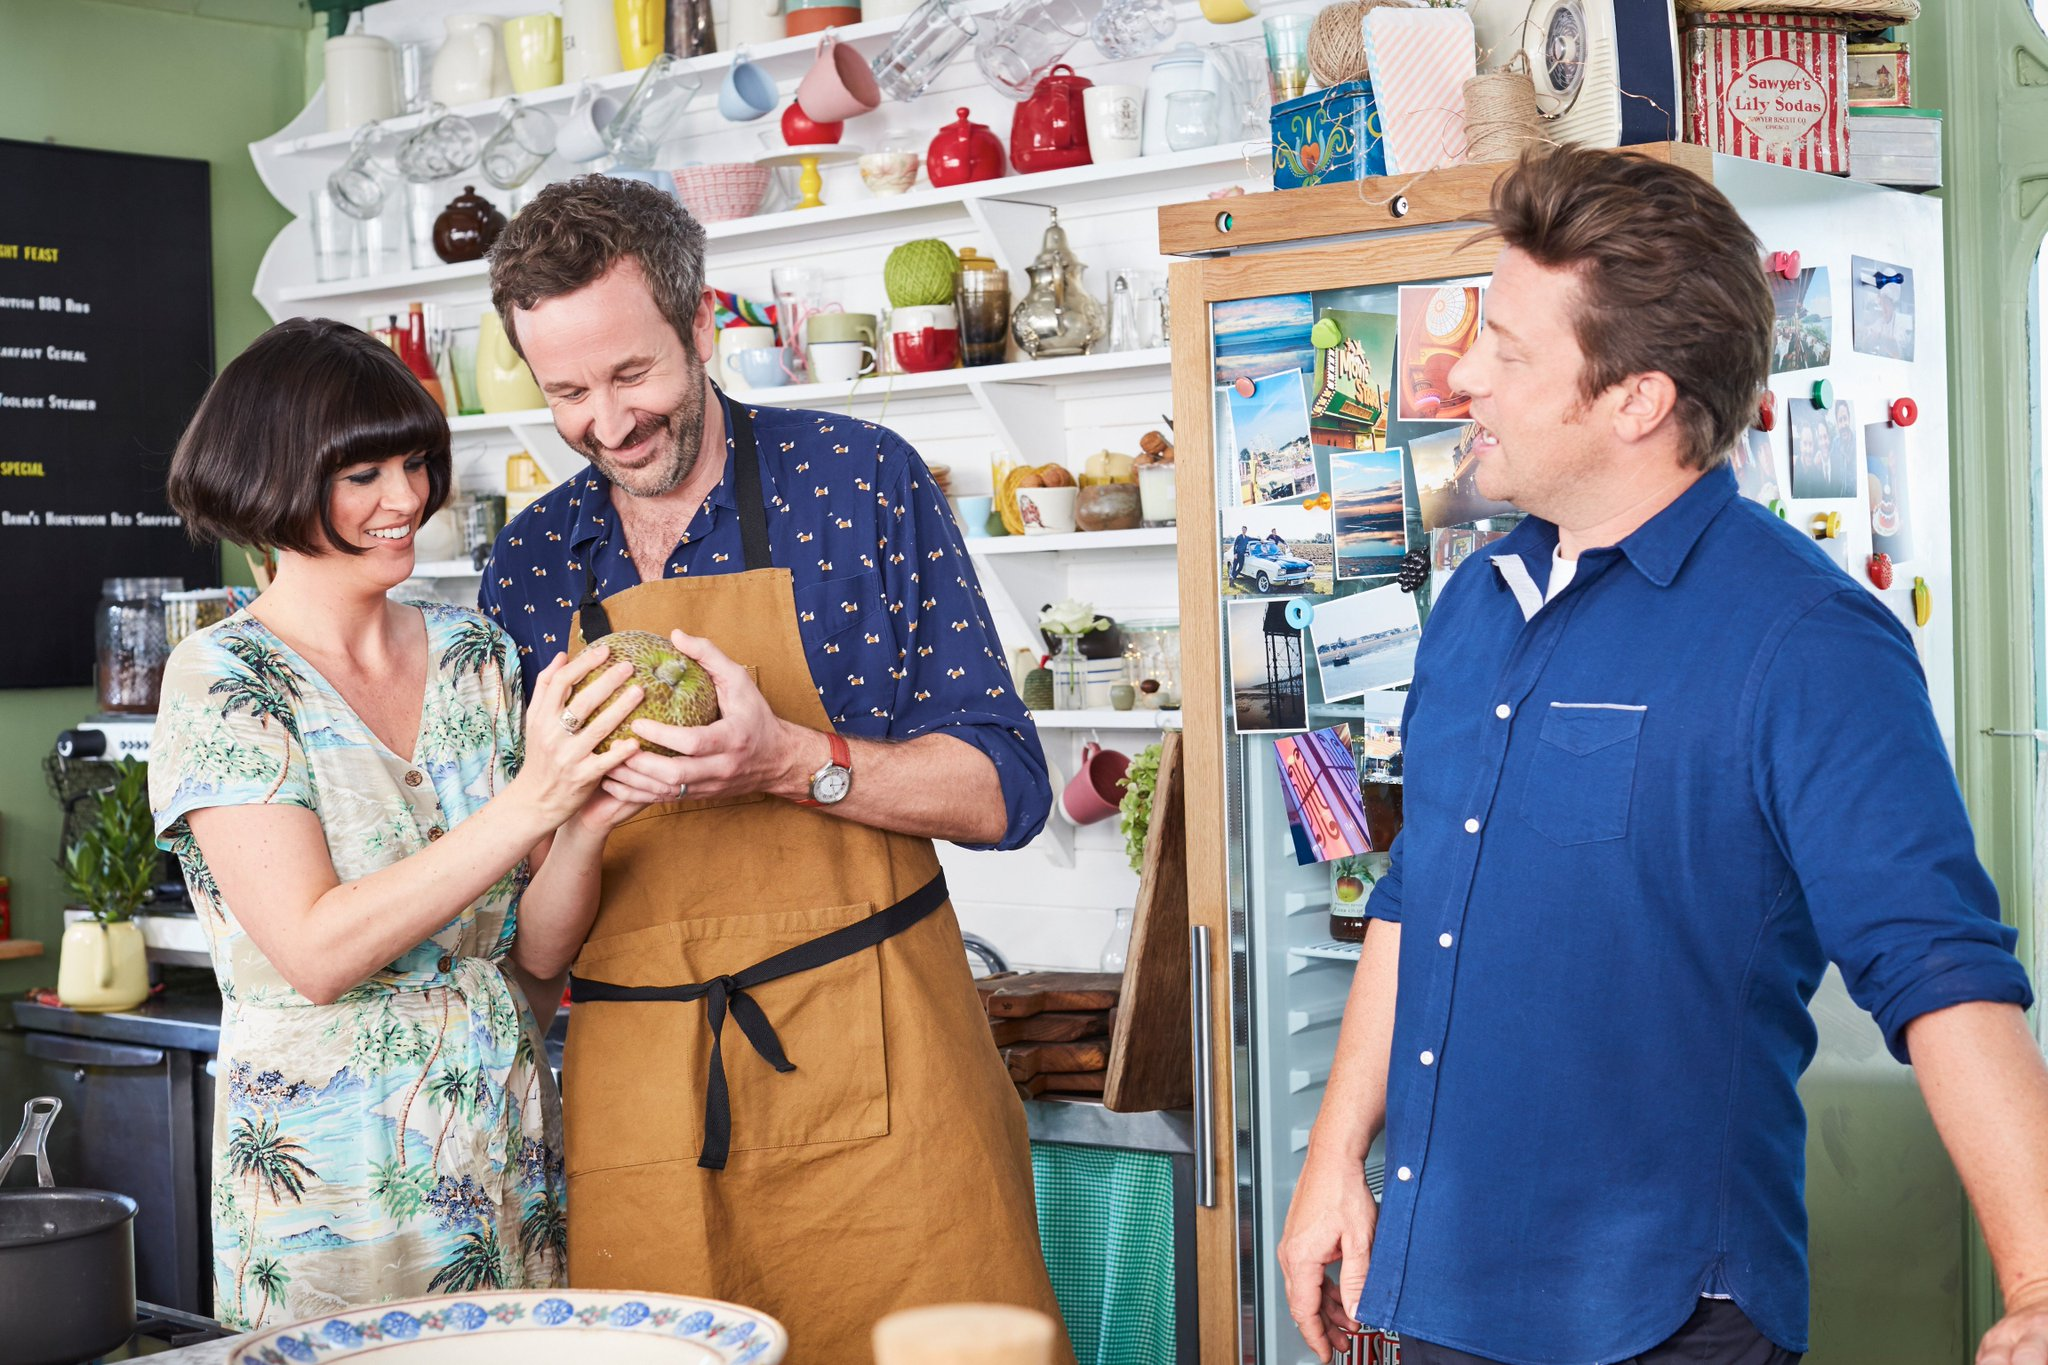 Baby number 3 for @BigBoyler and @hotpatooties… breadfruit. #FridayNightFeast https://t.co/9n3aLe0AjG